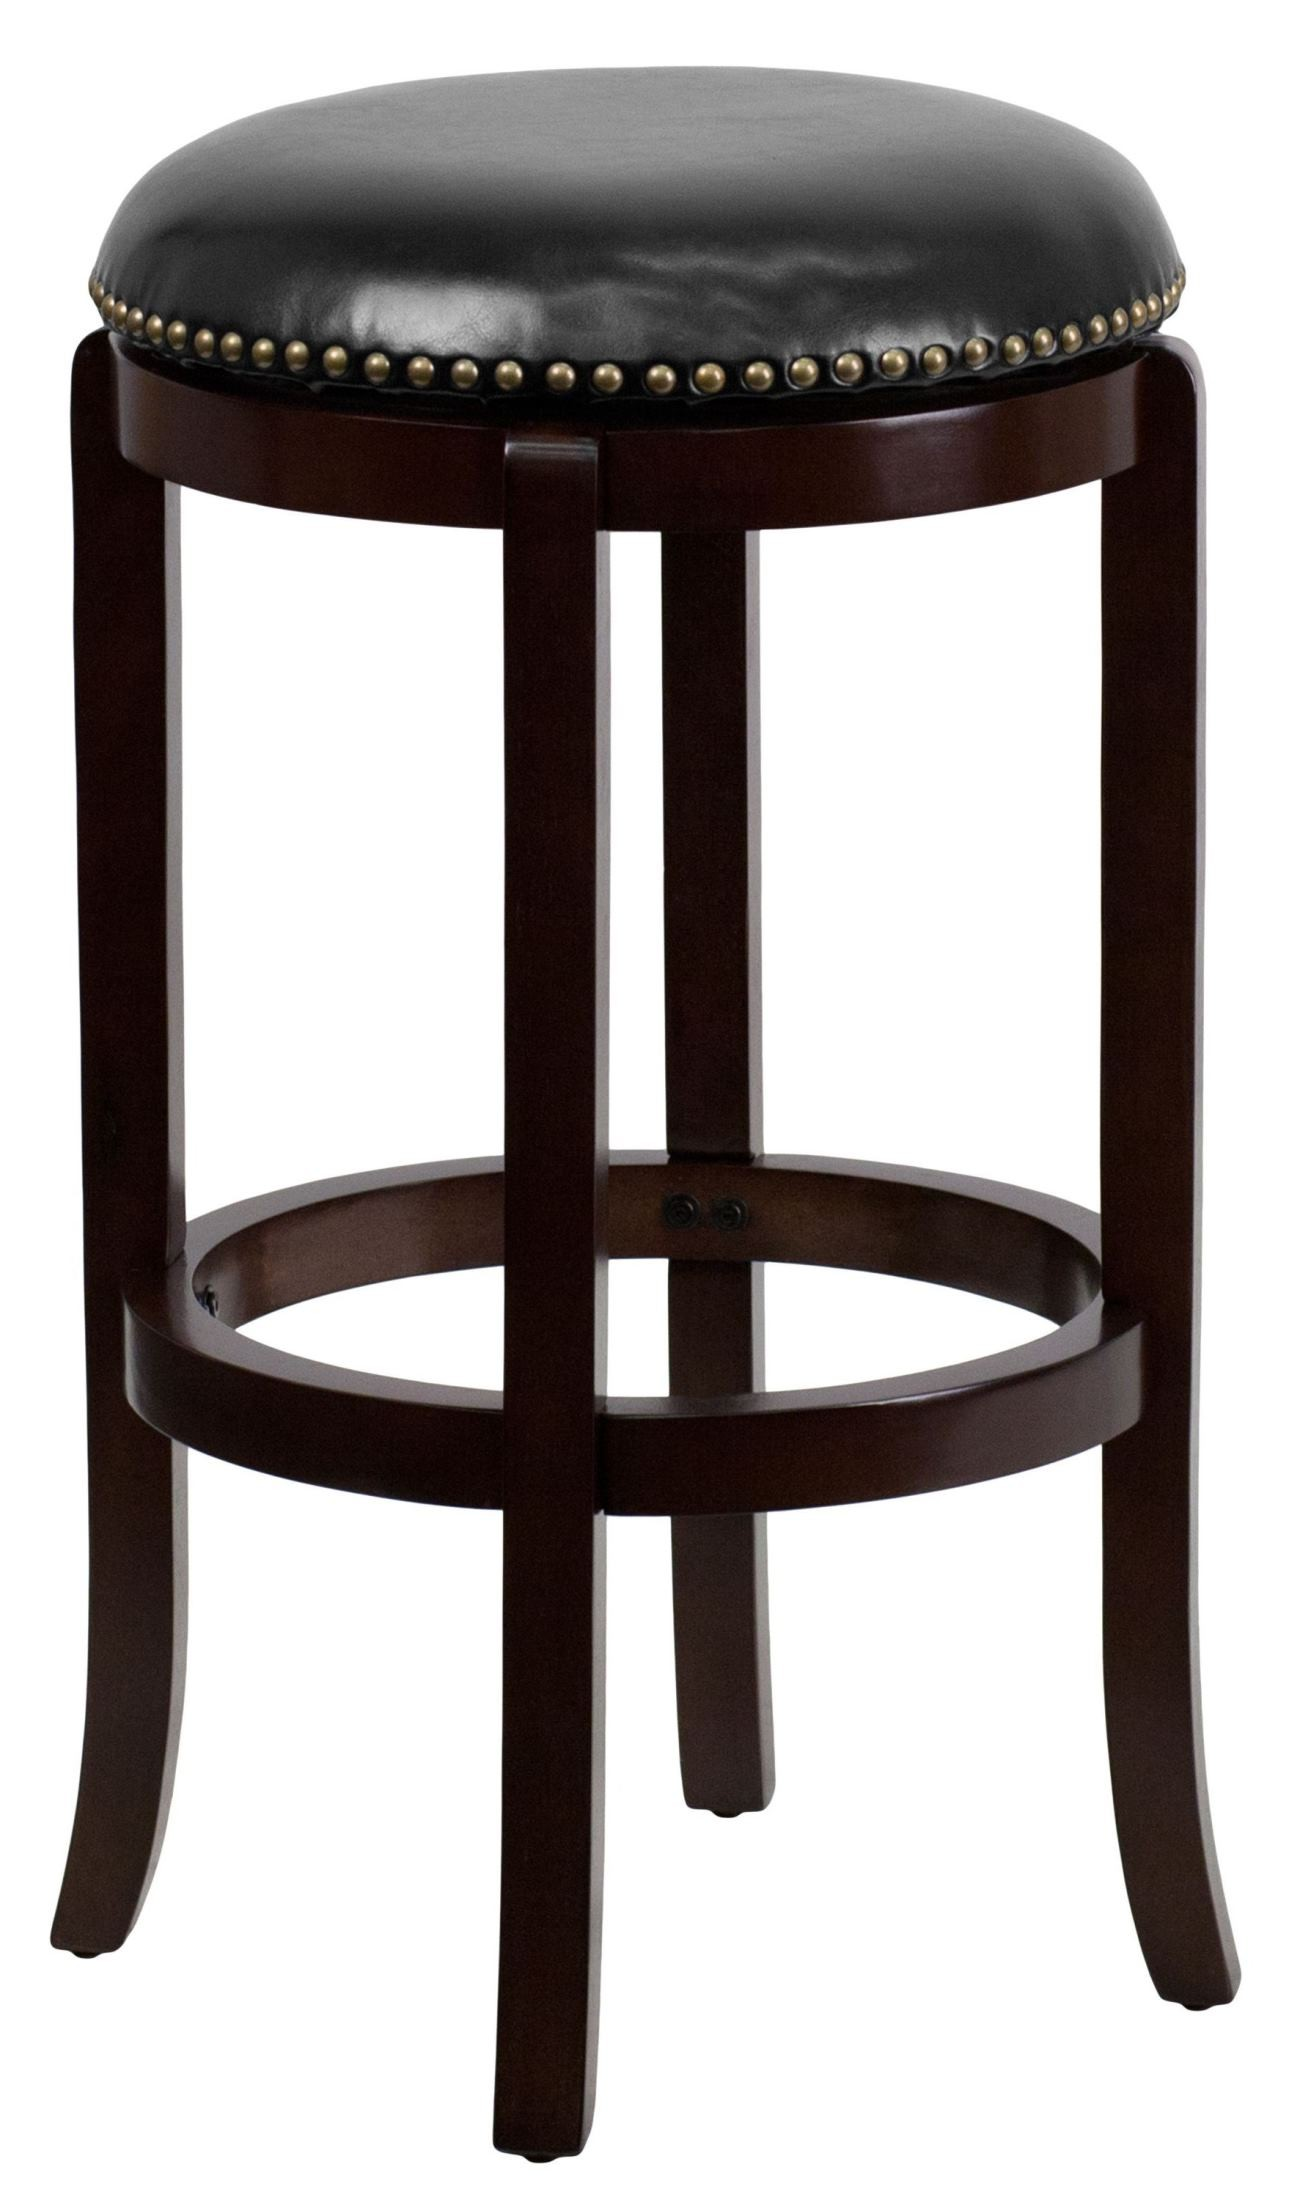 29inch backless cappuccino wood black swivel bar stool from renegade coleman furniture. Black Bedroom Furniture Sets. Home Design Ideas